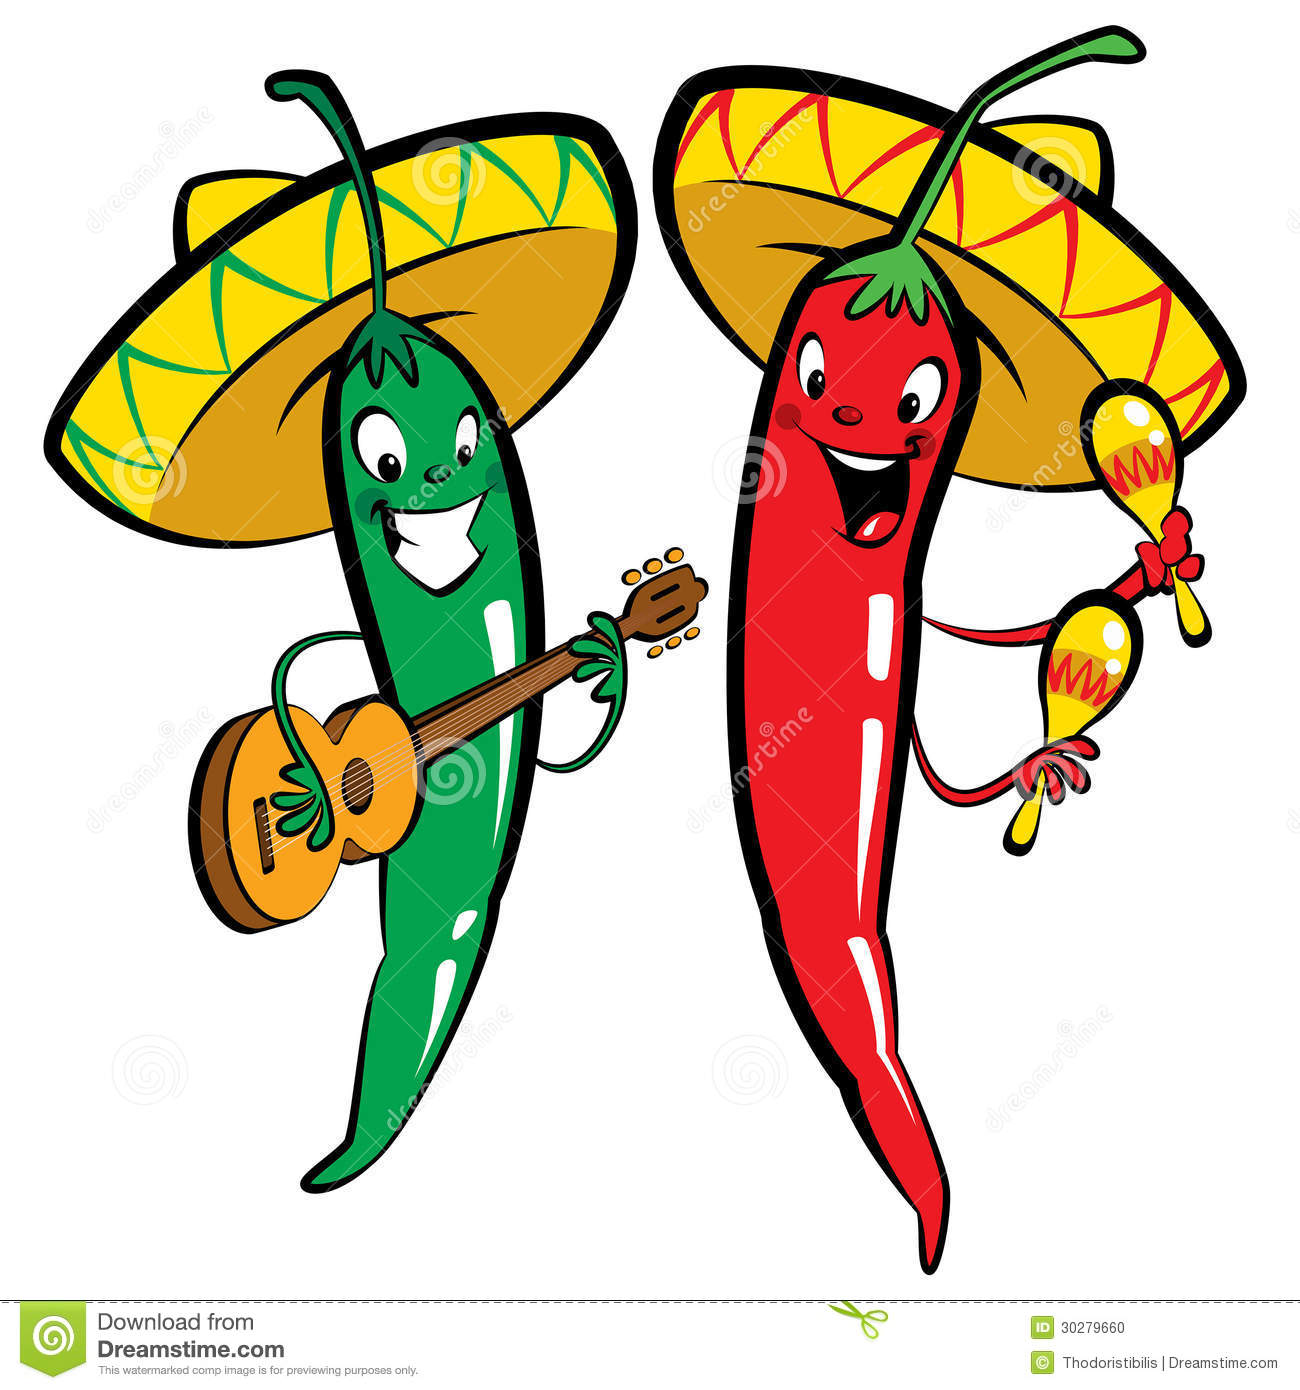 Hot Chili Peppers Clip Art Royalty Free Stock Photos.